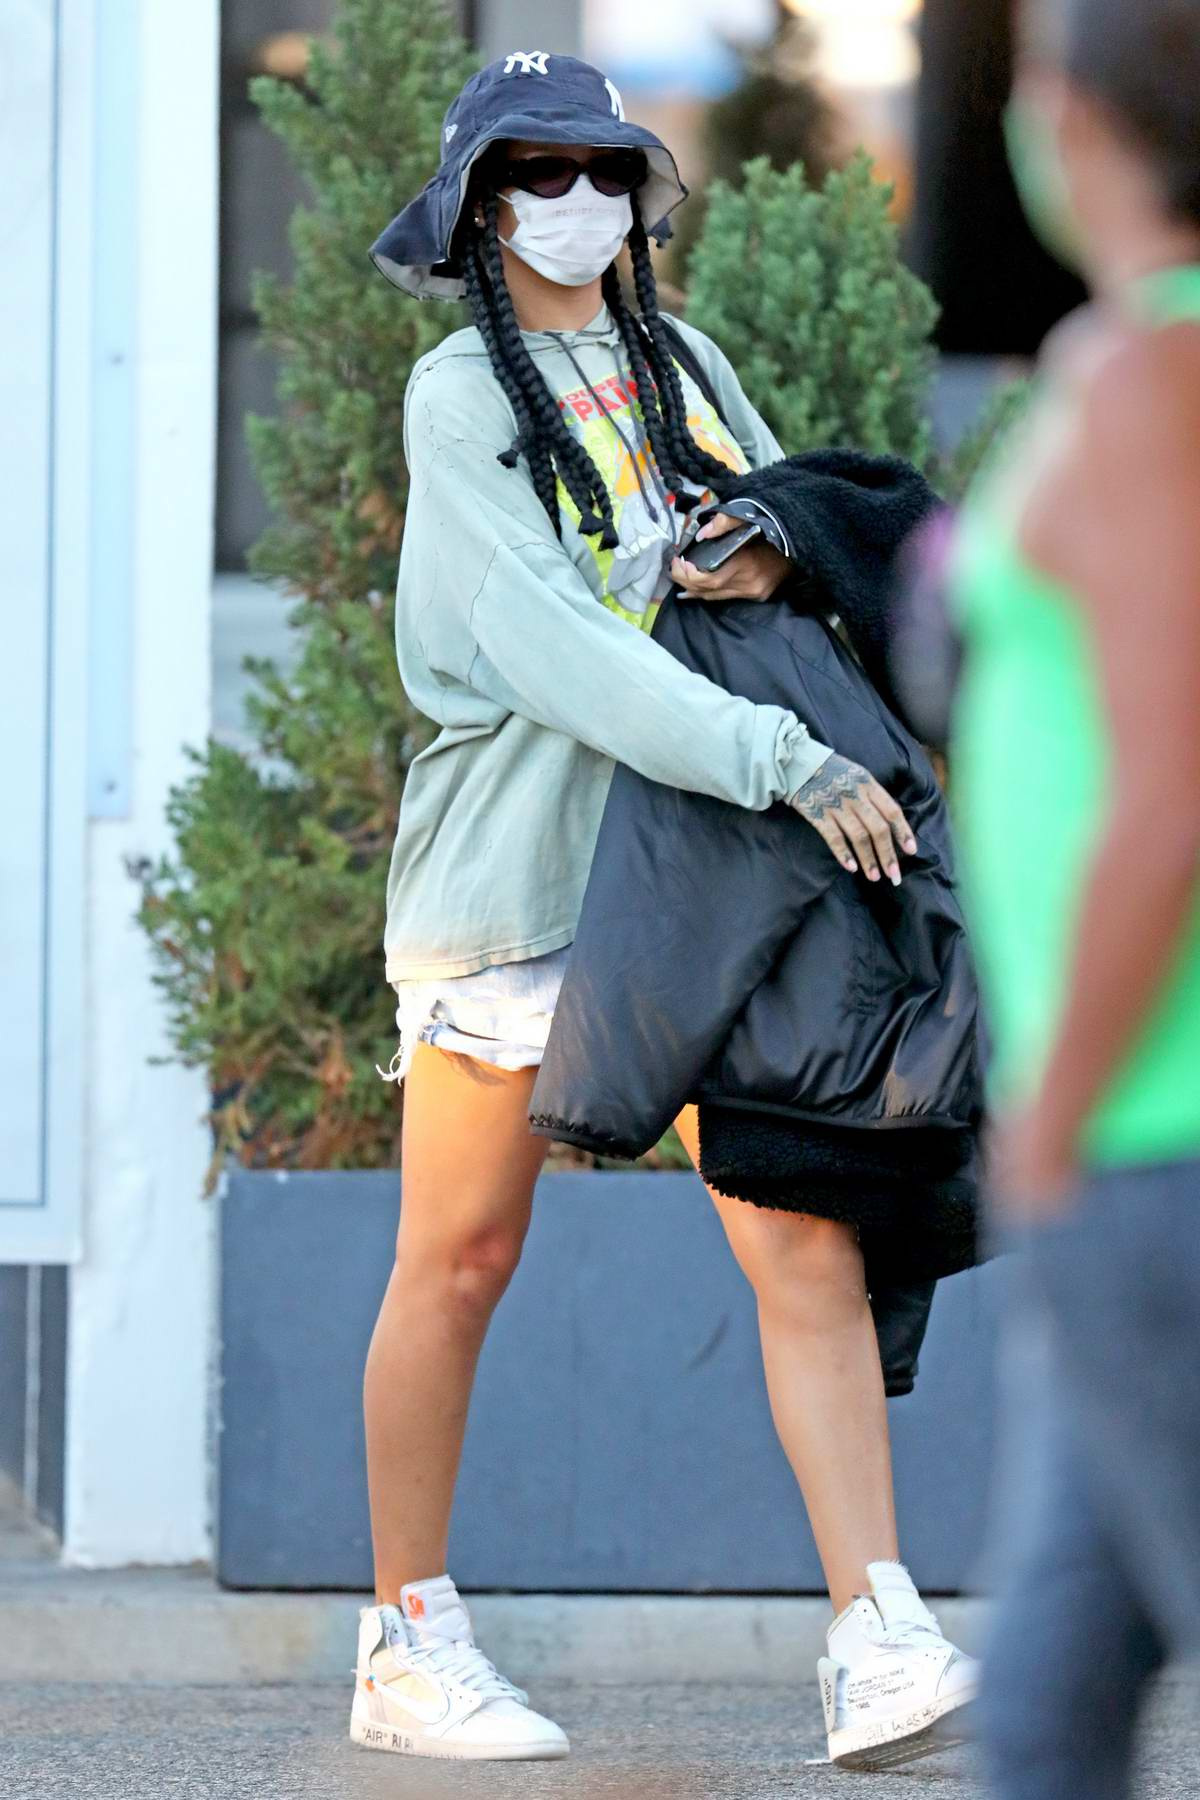 Rihanna steps out wearing a vintage hoodie and denim shorts for shopping in Los Angeles